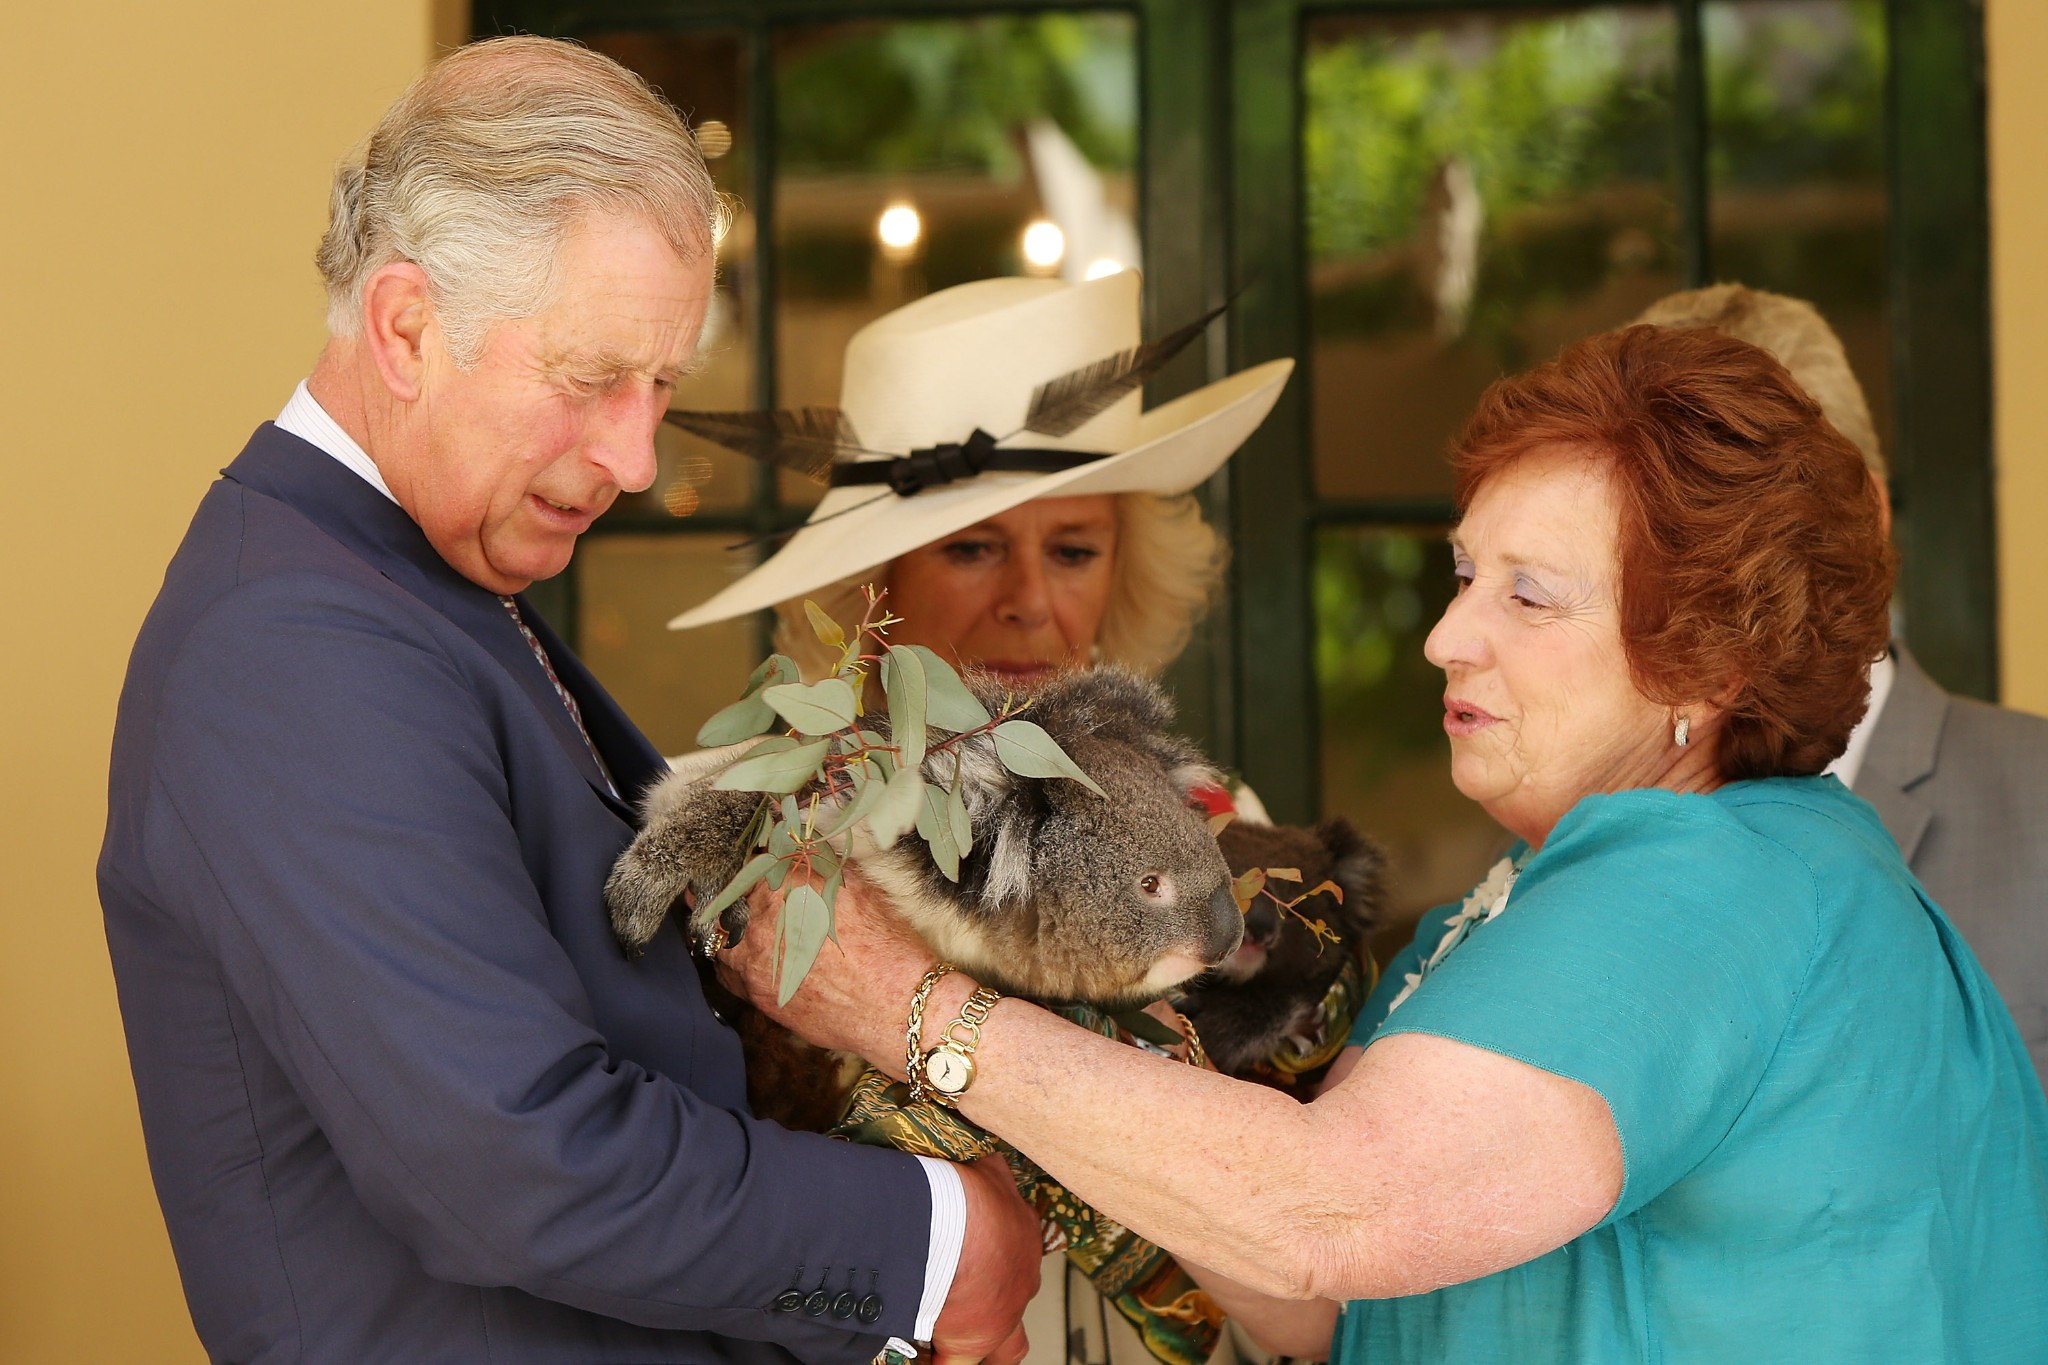 Photo: ADELAIDE, AUSTRALIA - NOVEMBER 07:  Camilla, Duchess of Cornwall and Prince Charles, Prince of Wales hold koalas with Koala rescue volunteer, Rae Campbell, at Government House on November 7, 2012 in Adelaide, Australia. The Royal couple are in Australia on the second leg of a Diamond Jubilee Tour taking in Papua New Guinea, Australia and New Zealand.  (Photo by Morne de Klerk/Getty Images)